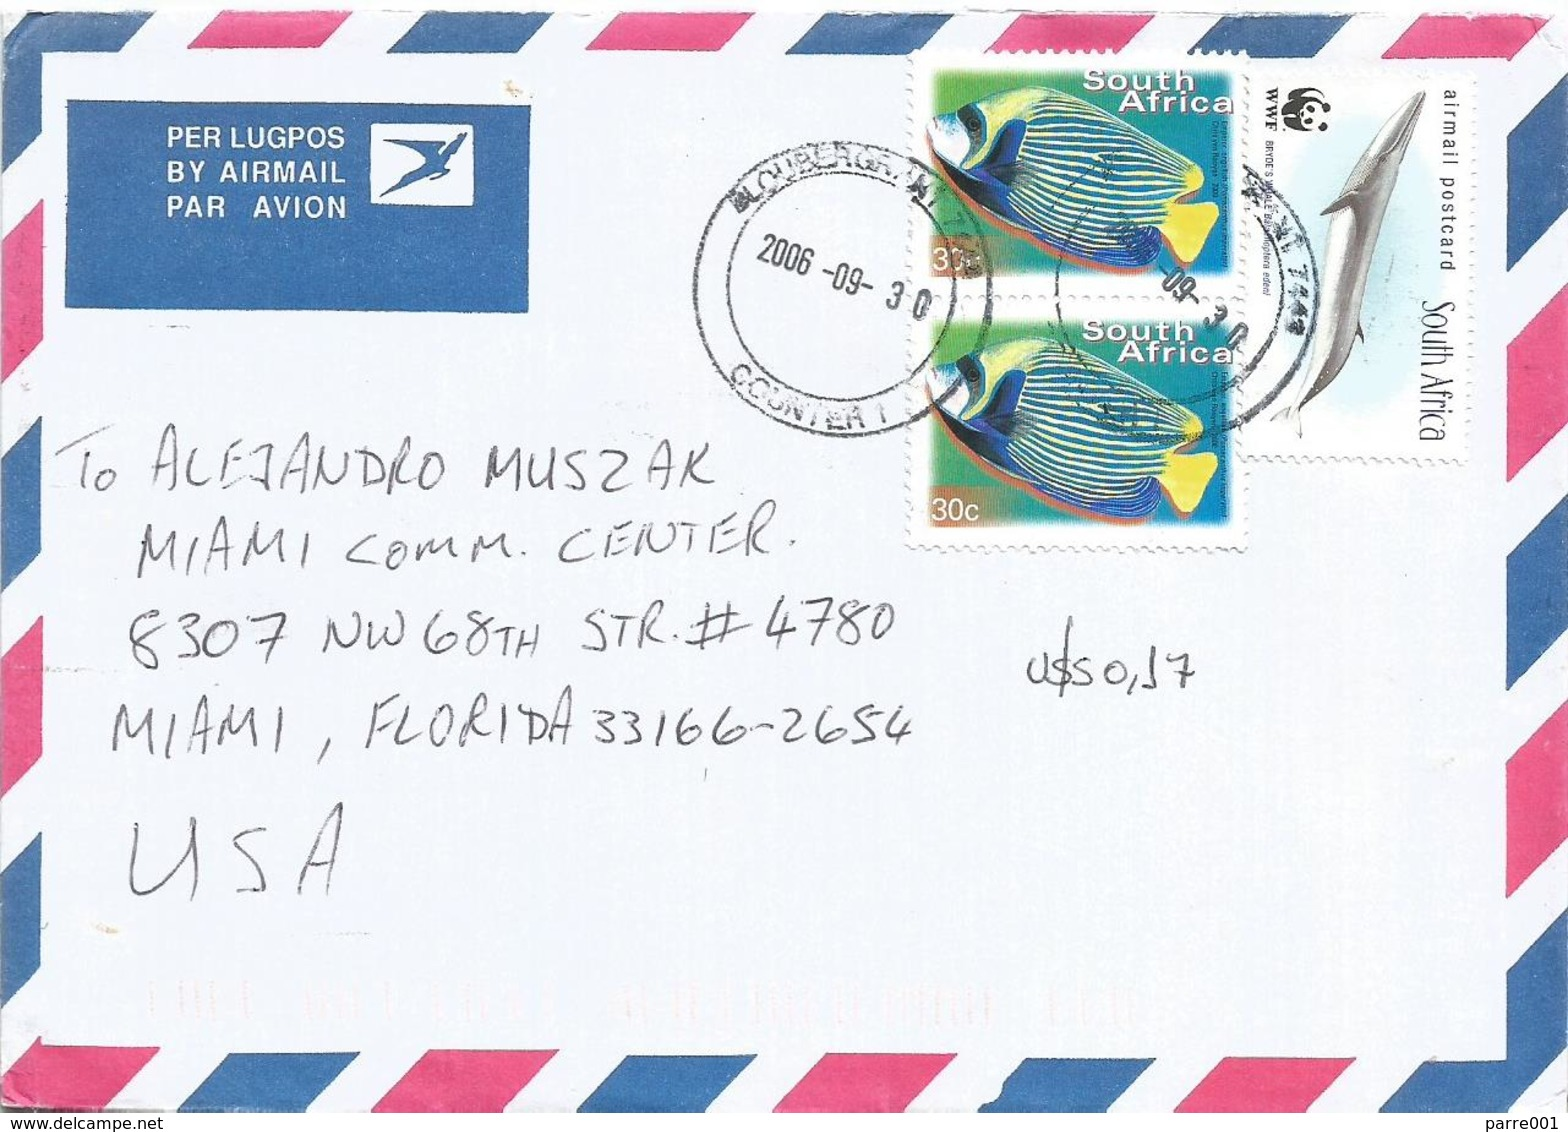 South Africa 2006 Bloubergrant WWF Bryde's Whale Emperor Anglefish Cover - W.W.F.